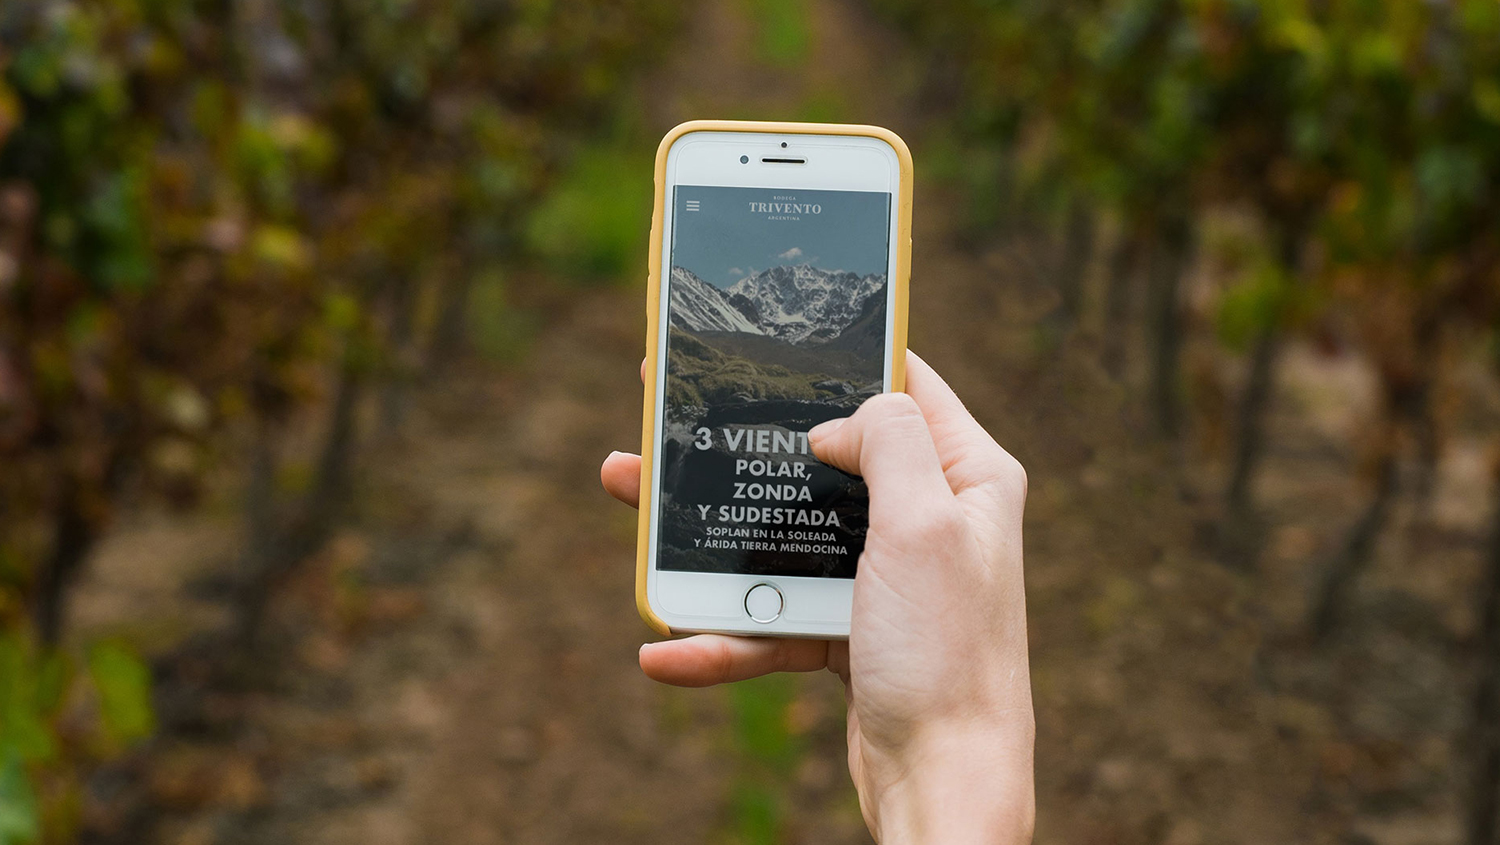 Building on the 2019 debut of its virtual winery tour, Trivento recently added a multimedia stop among the vines, featuring the Trivento winemaking team.